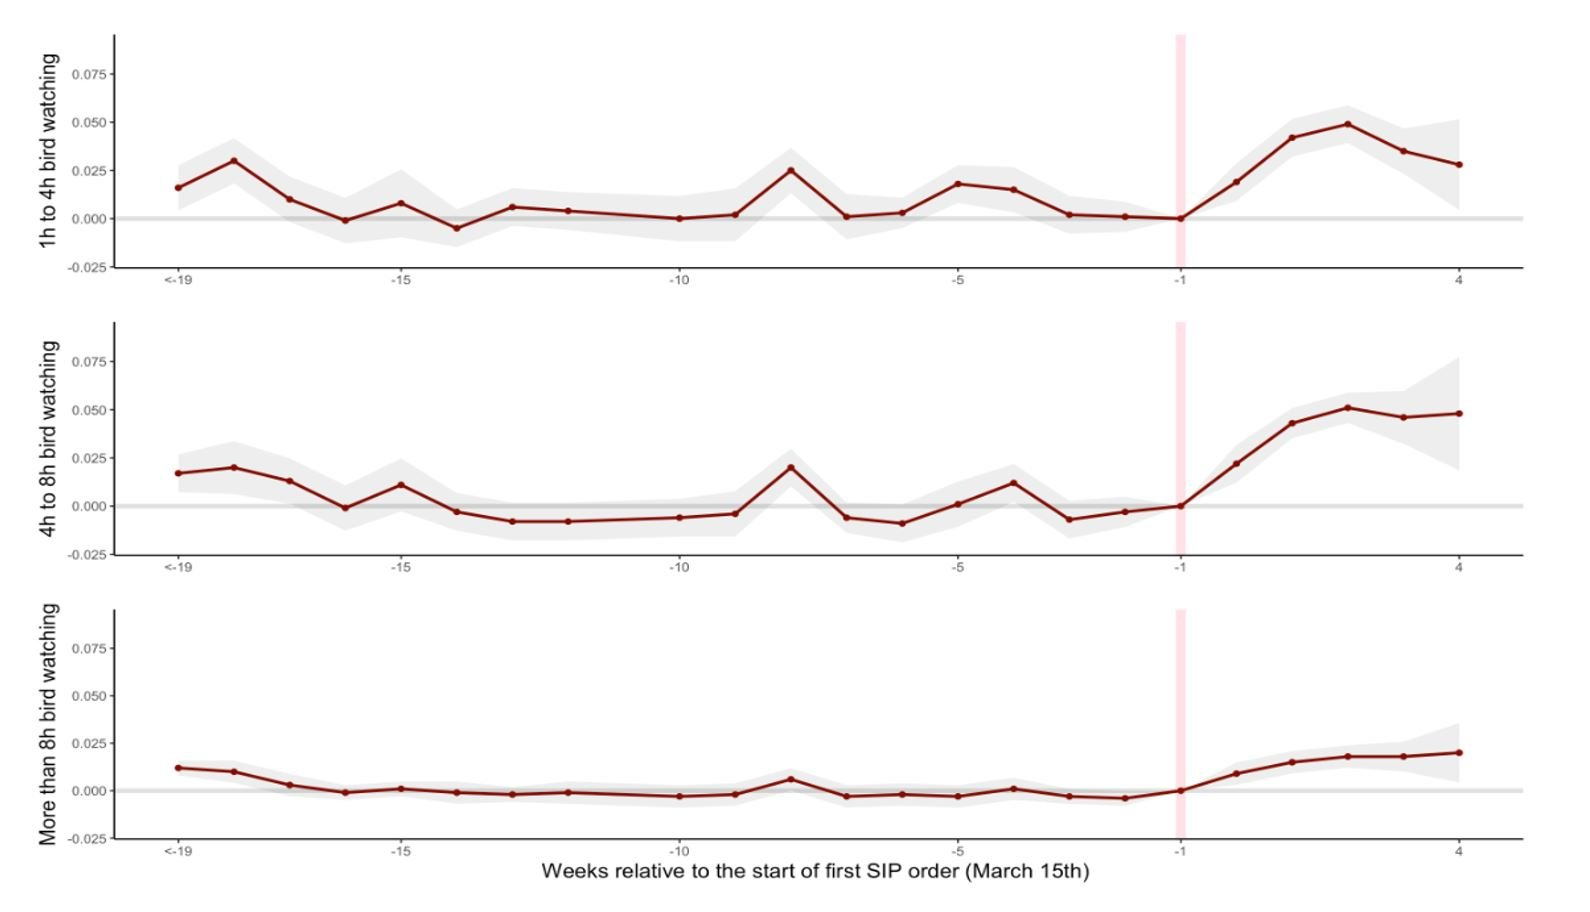 Figure showing trends in time watching birds